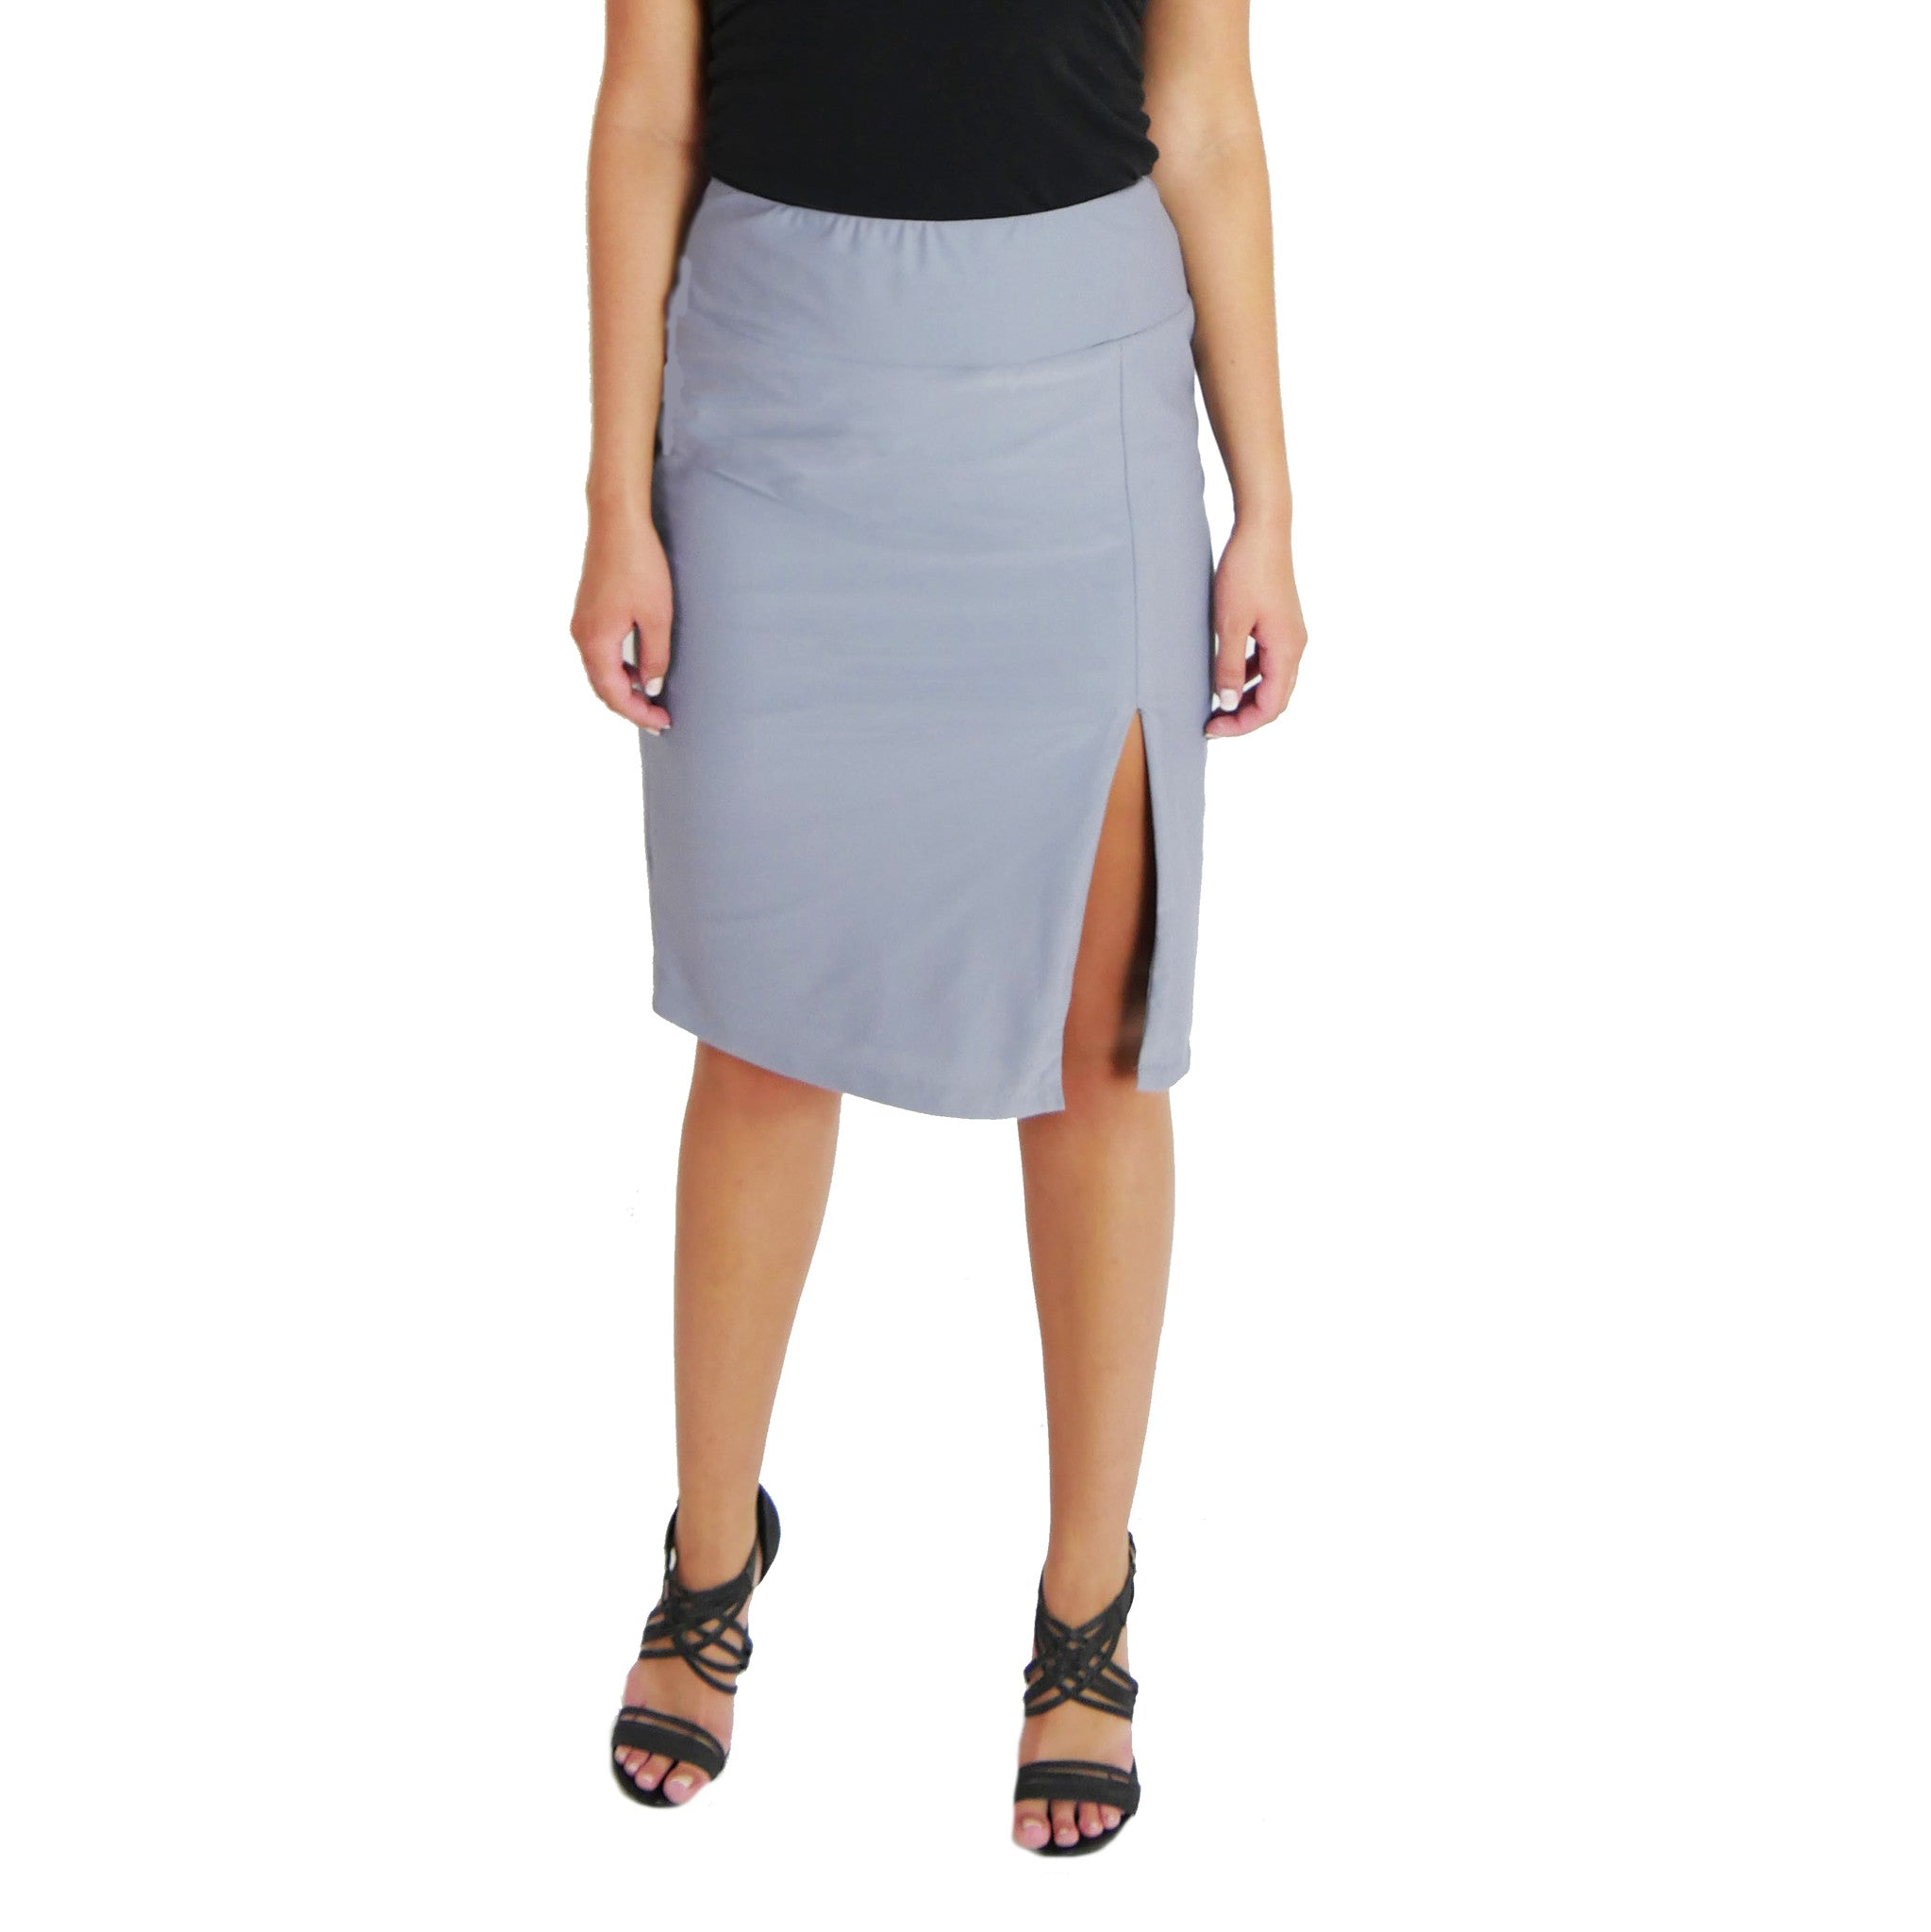 Grey Work Skirt